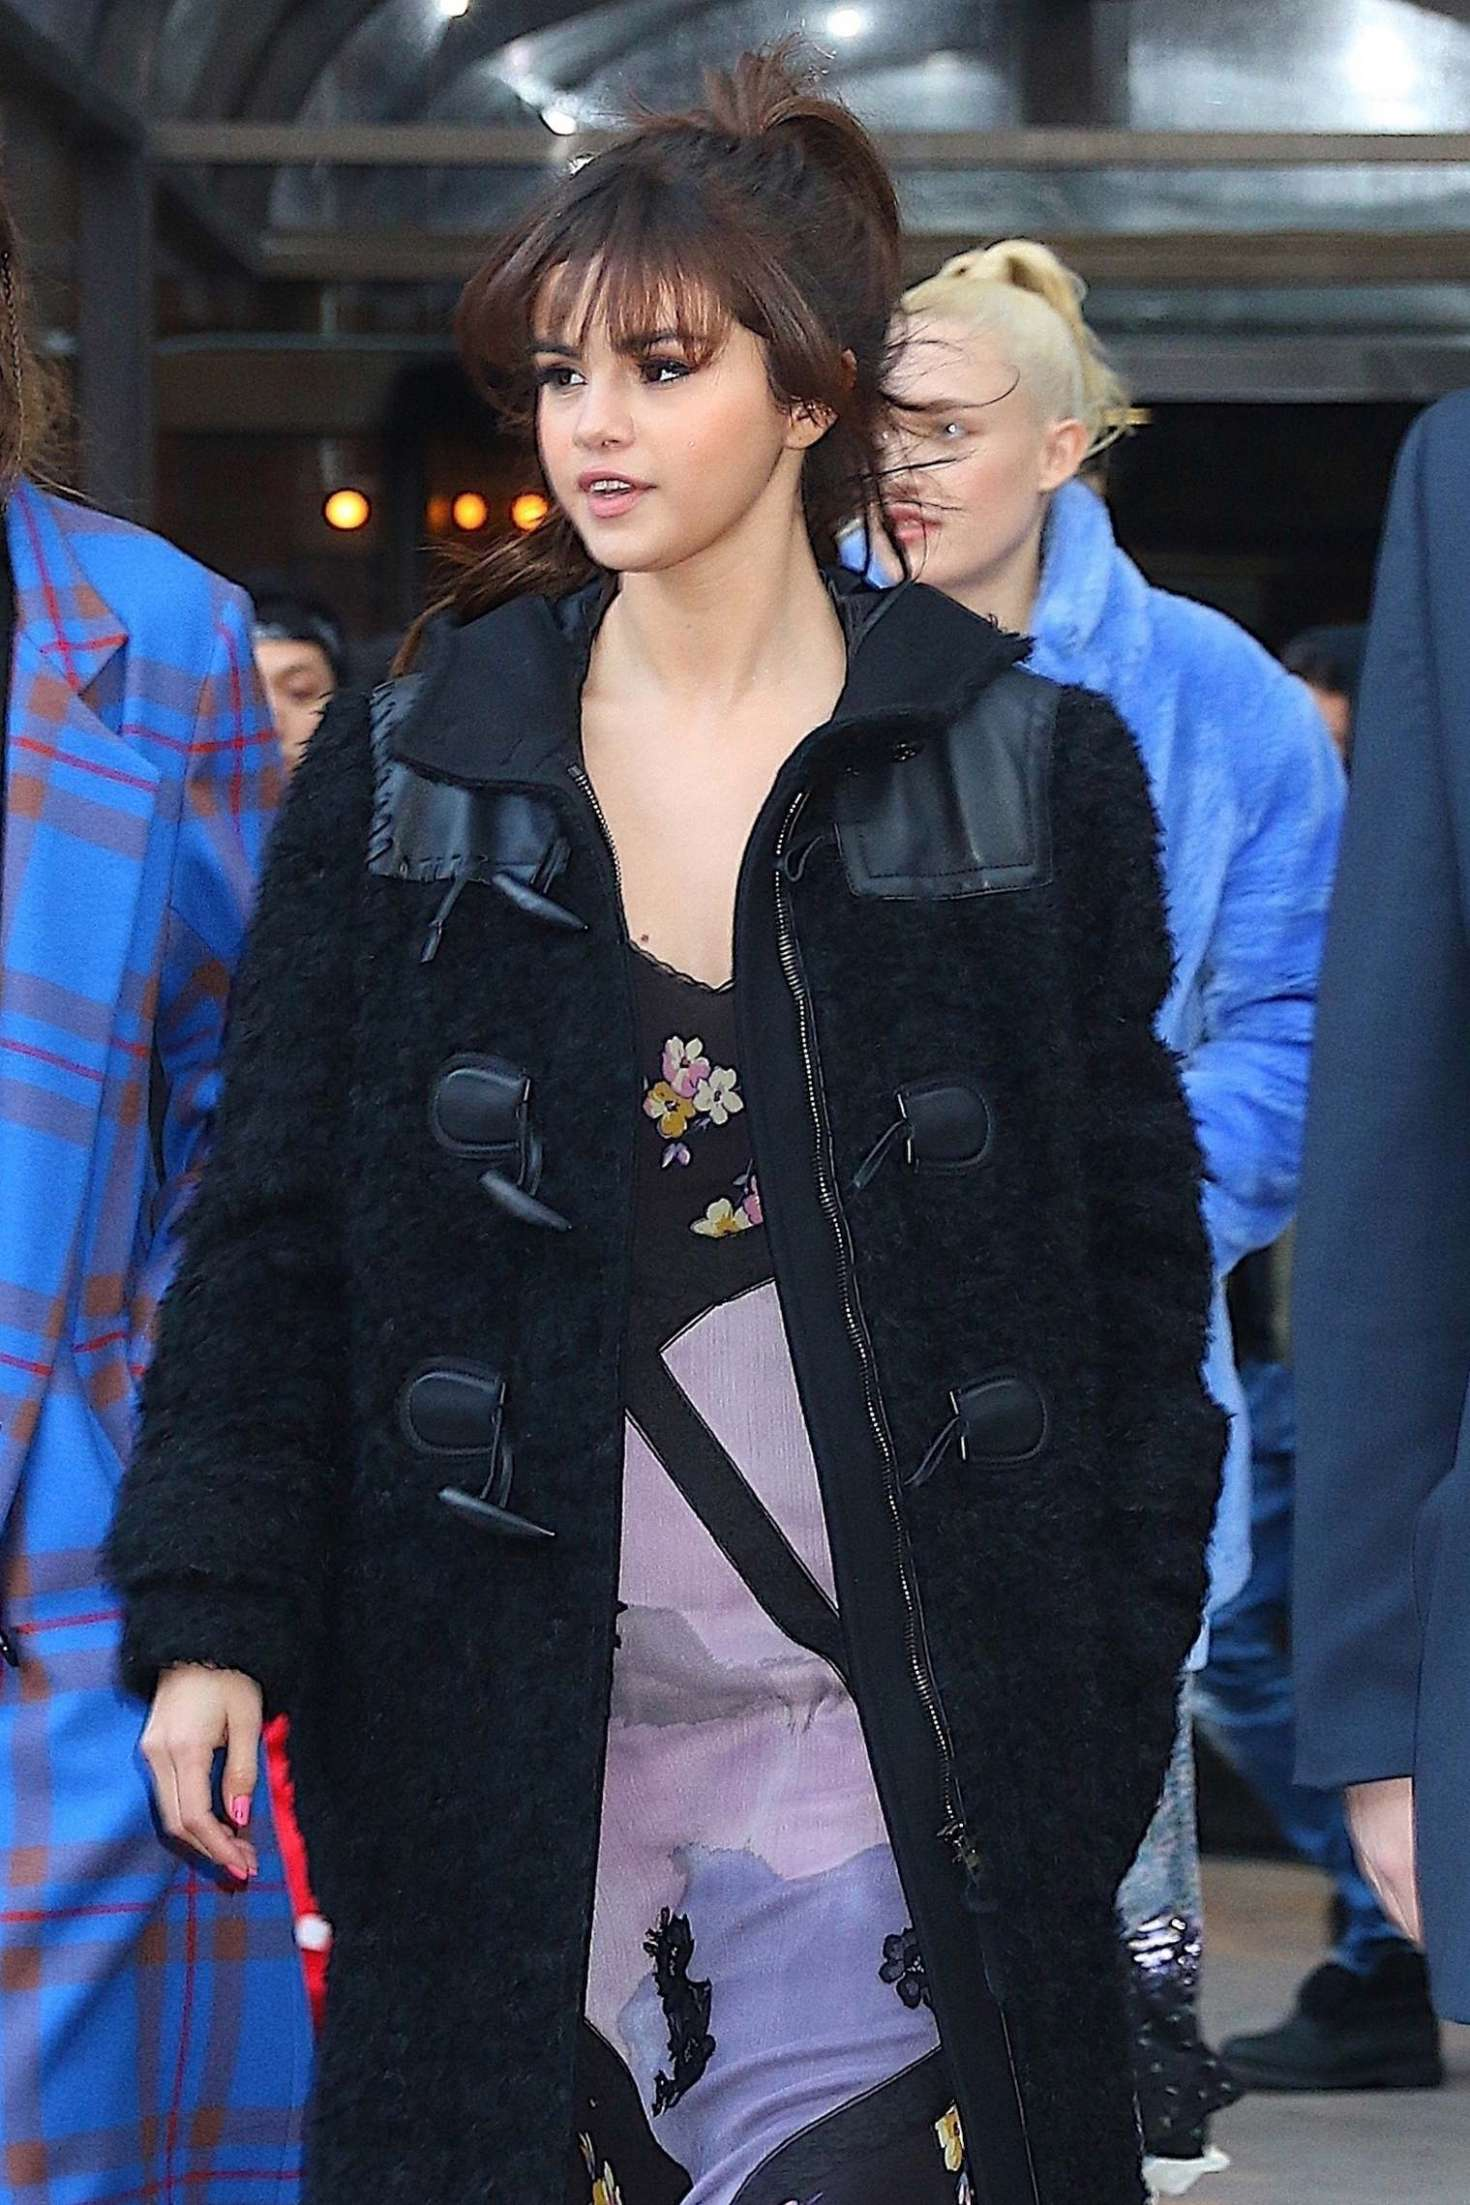 Selena Gomez Leaving Her Friends Apartment In New York